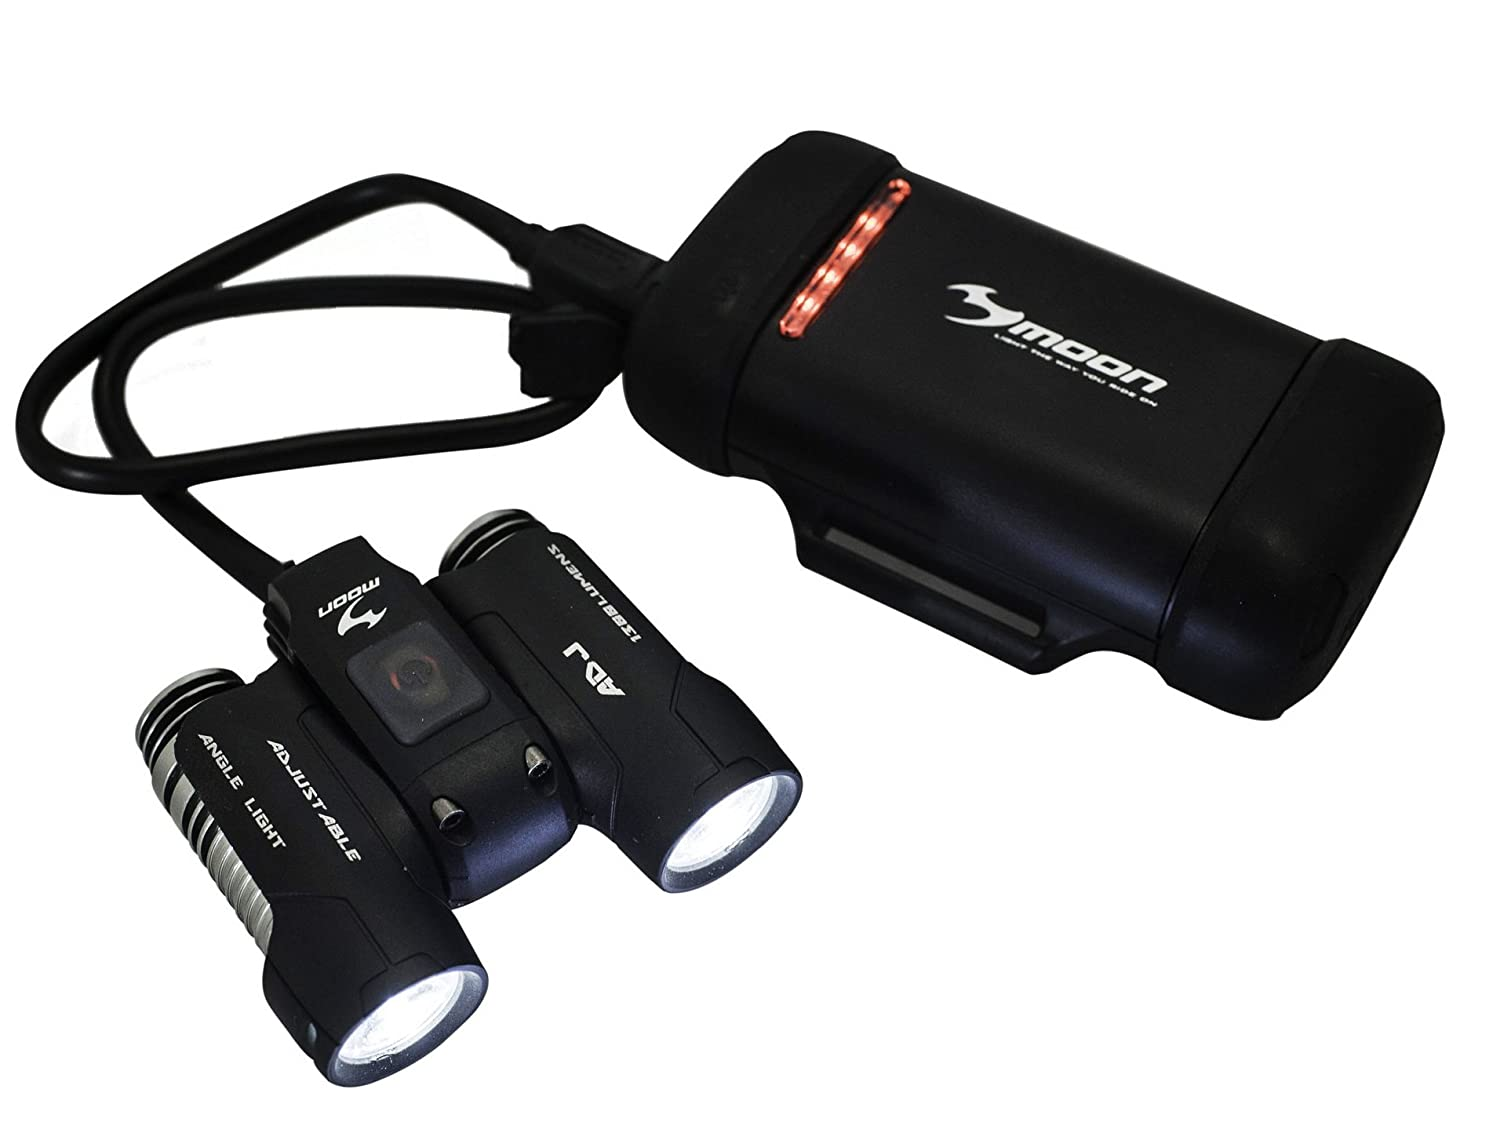 Moon ADJ 1300 Lumen Rechargeable Front Bike Lights with 2 CREE LED's Having Independent Adjustment LAA544